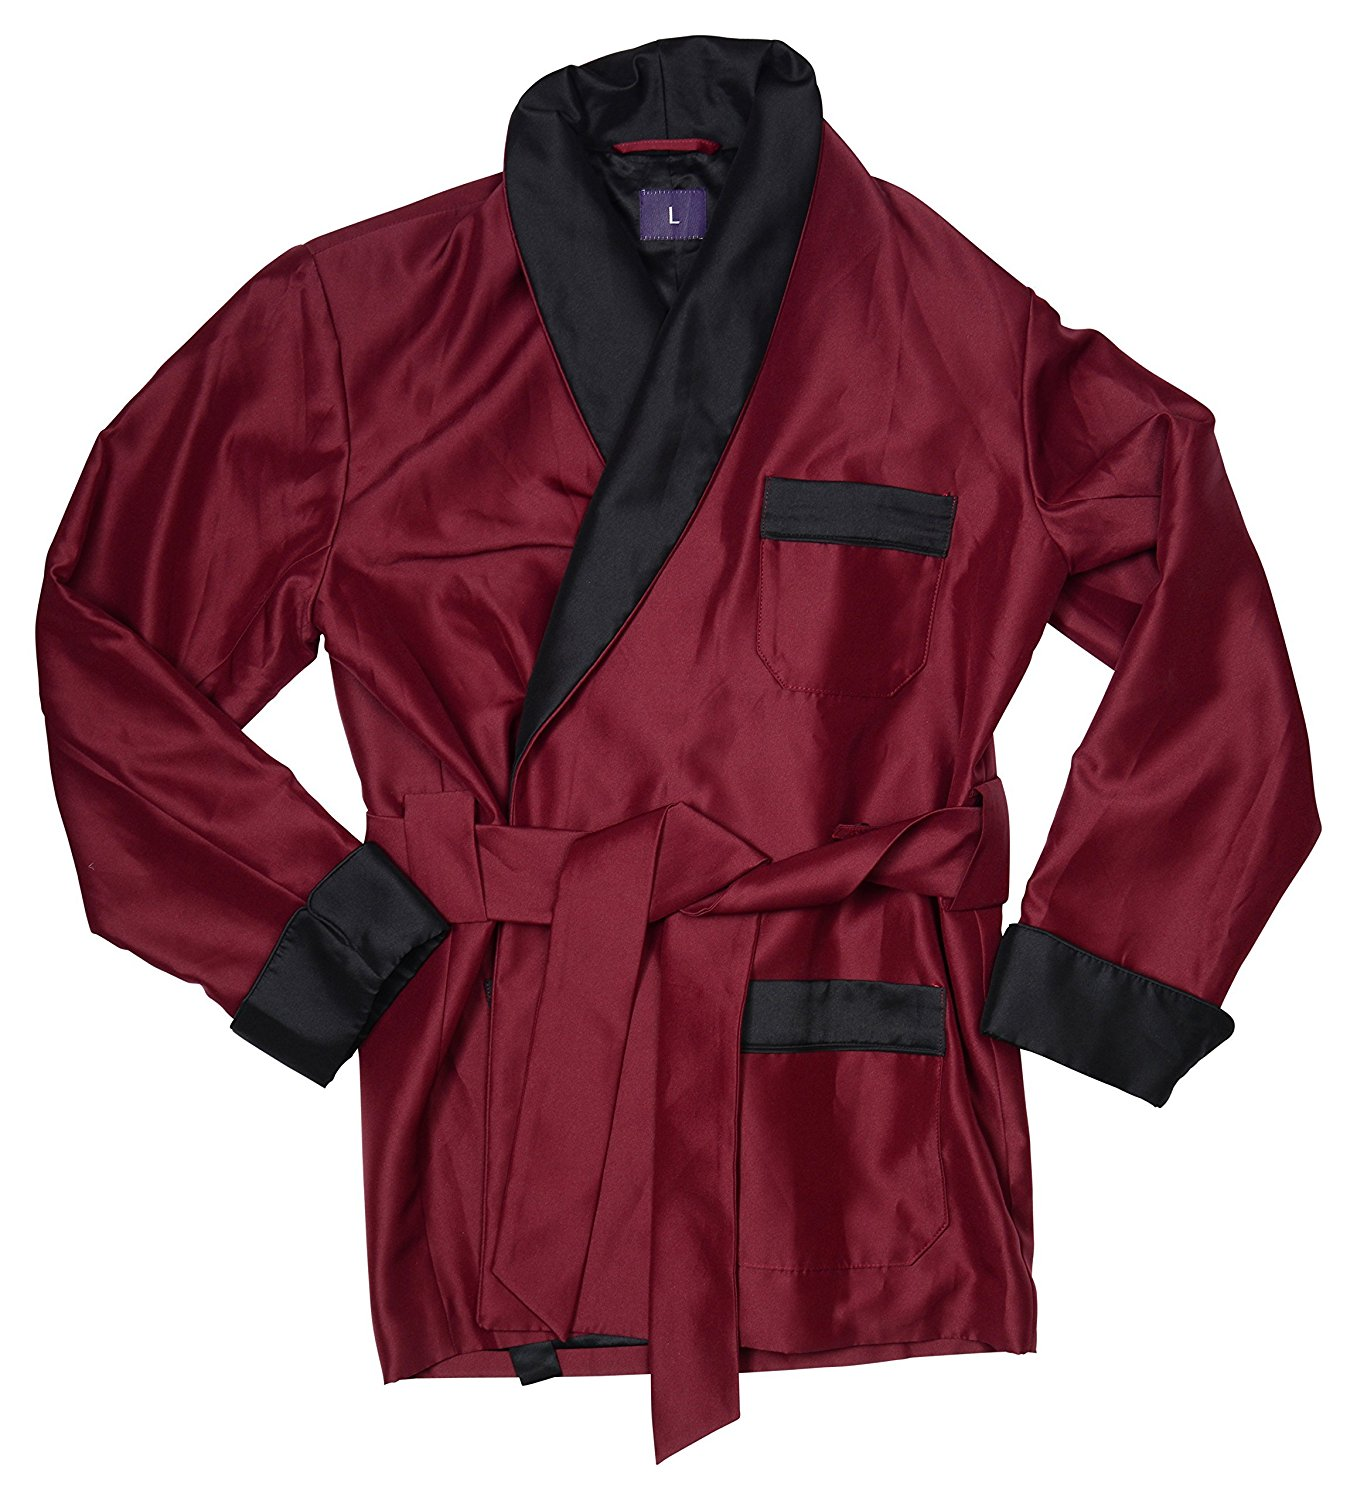 menu0027s smoking jacket perry burgundy at amazon menu0027s clothing store: smlxrsj